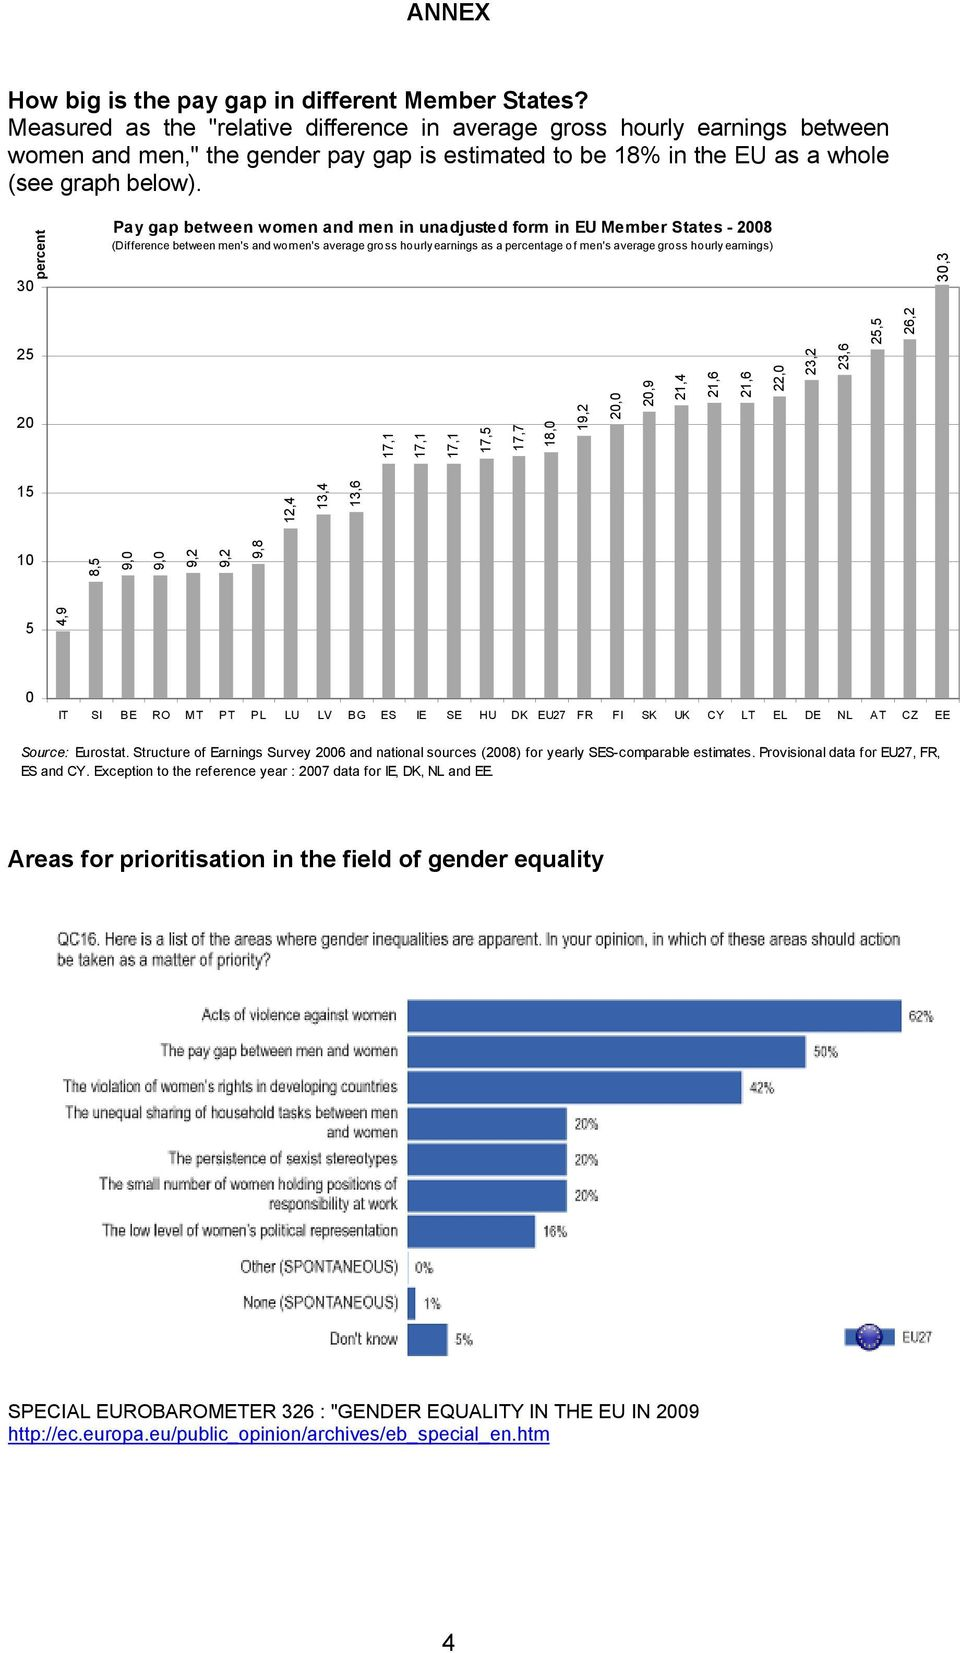 30 percent Pay gap between women and men in unadjusted form in EU Member States - 2008 (Difference between men's and women's average gross hourly earnings as a percentage of men's average gross